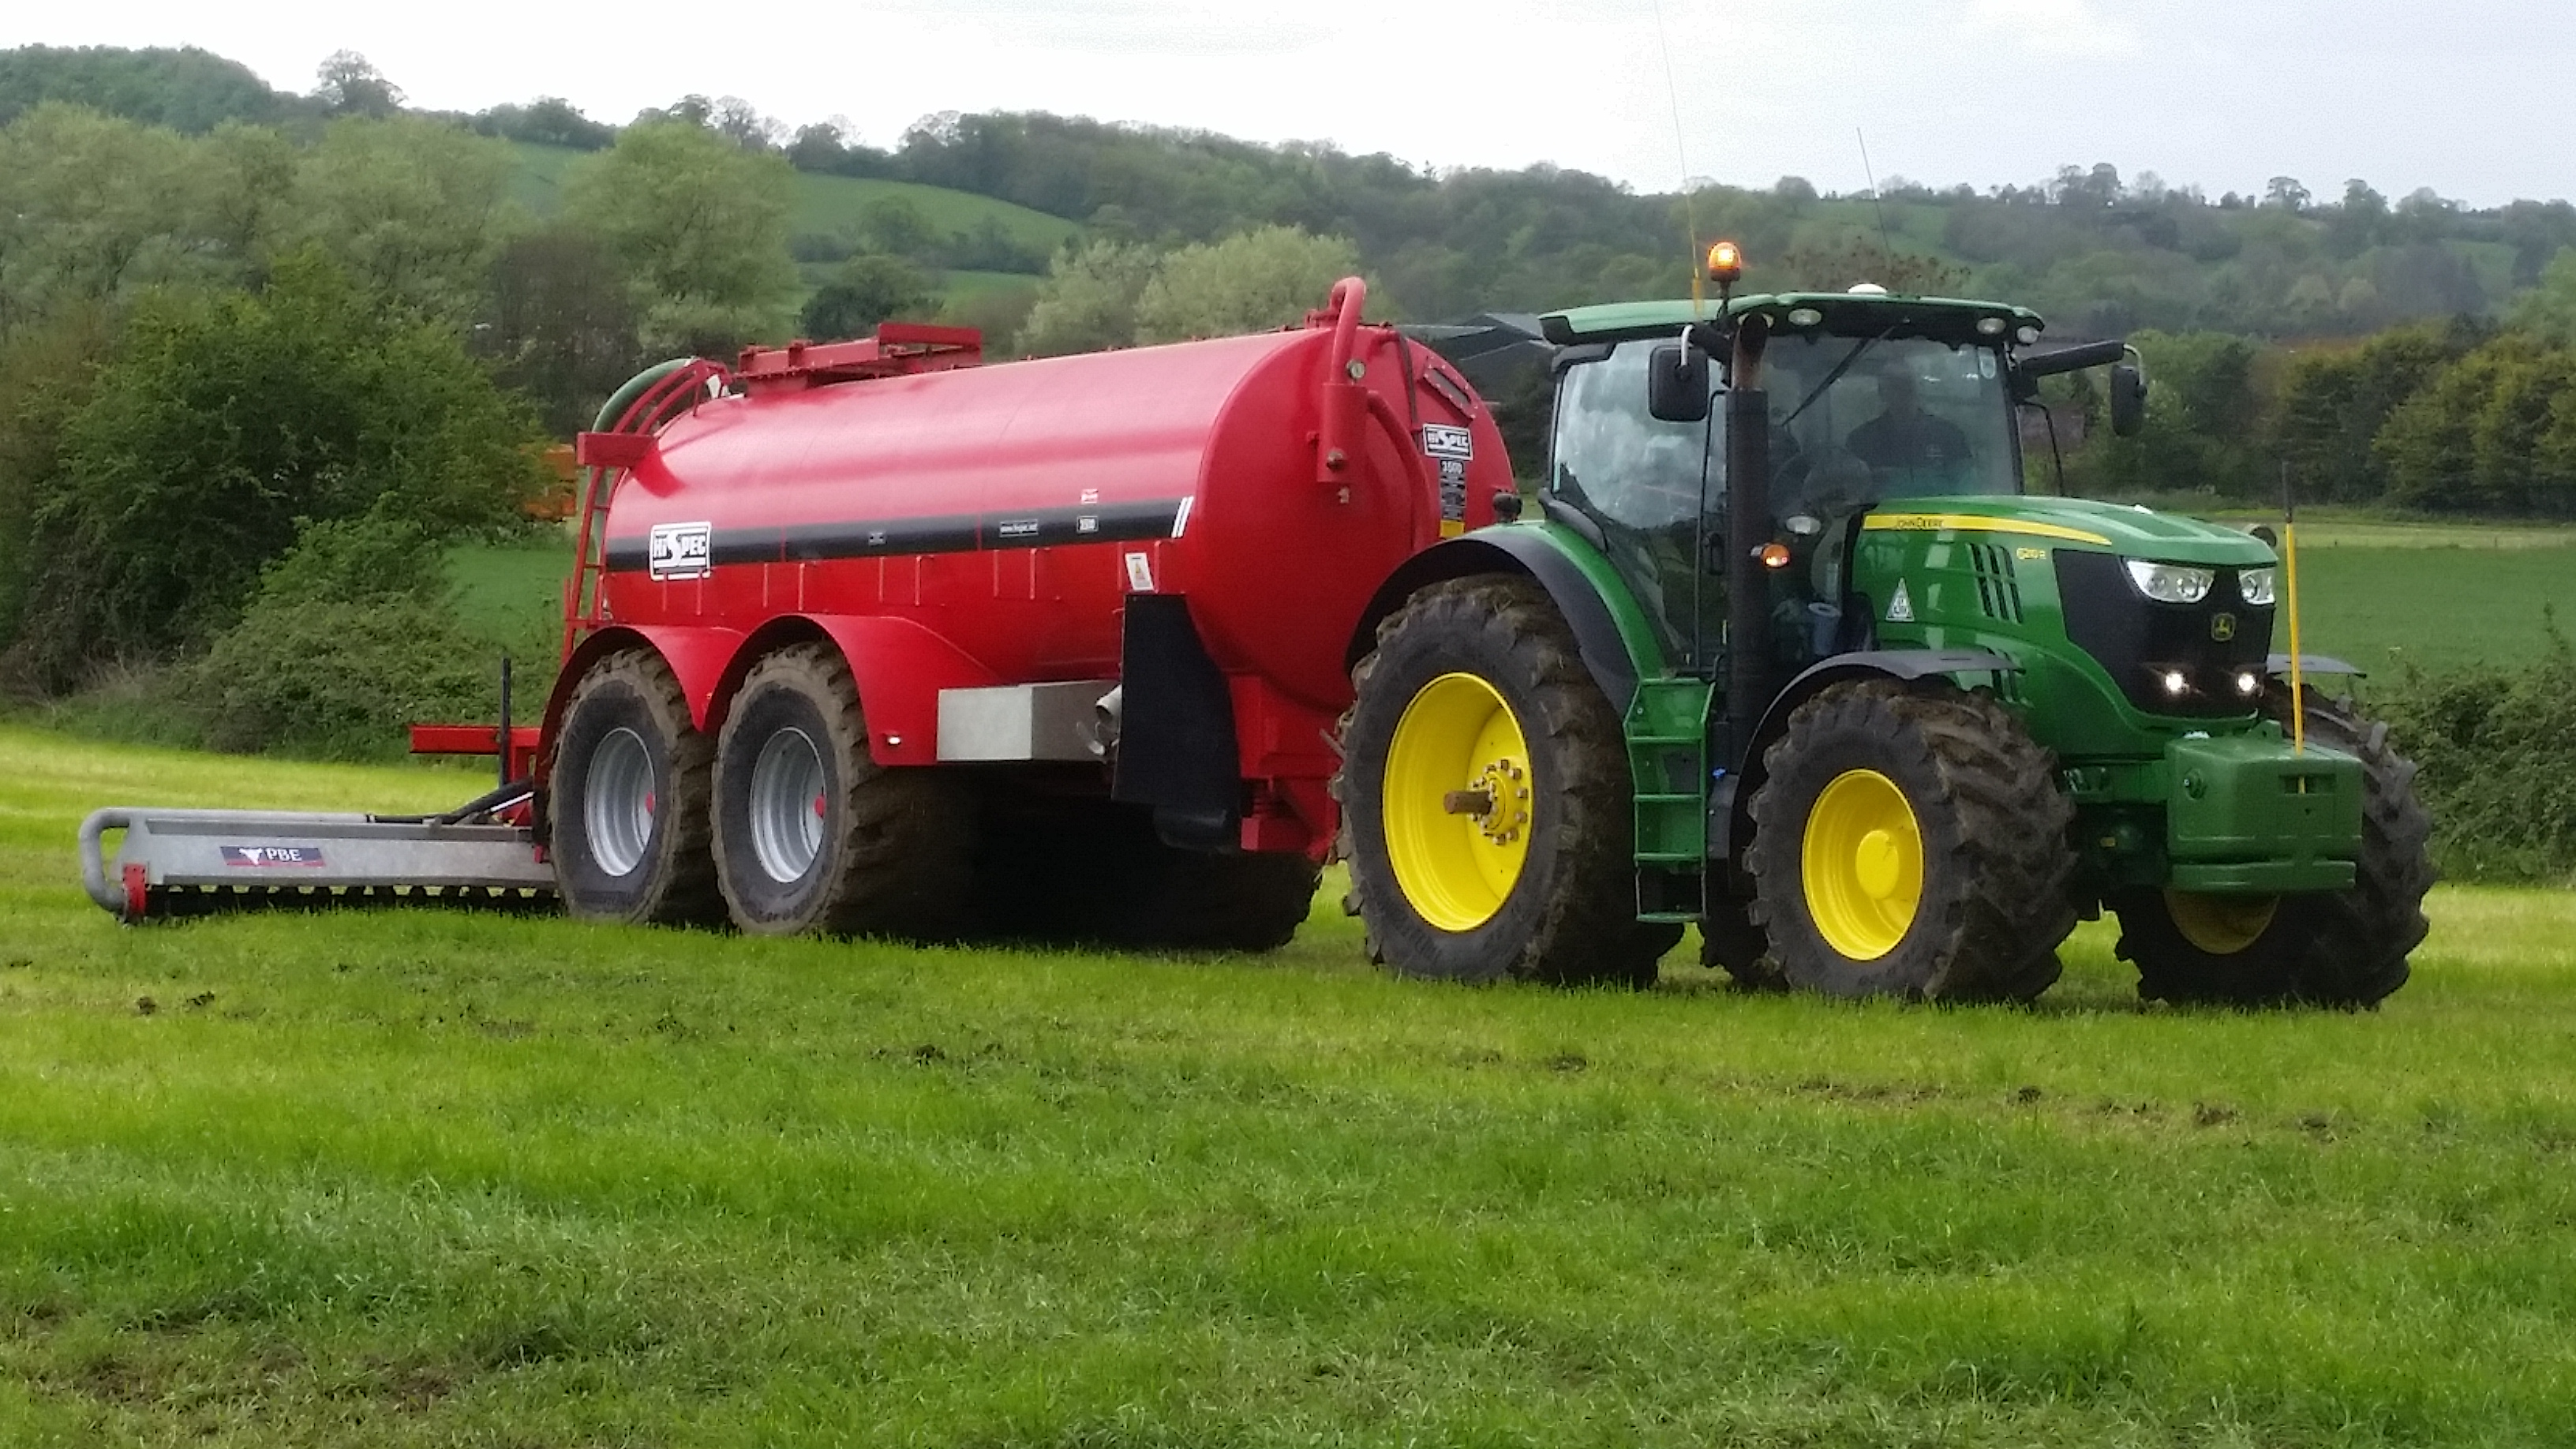 Tractor With Tanker : Compounds like will not solve soil fertility